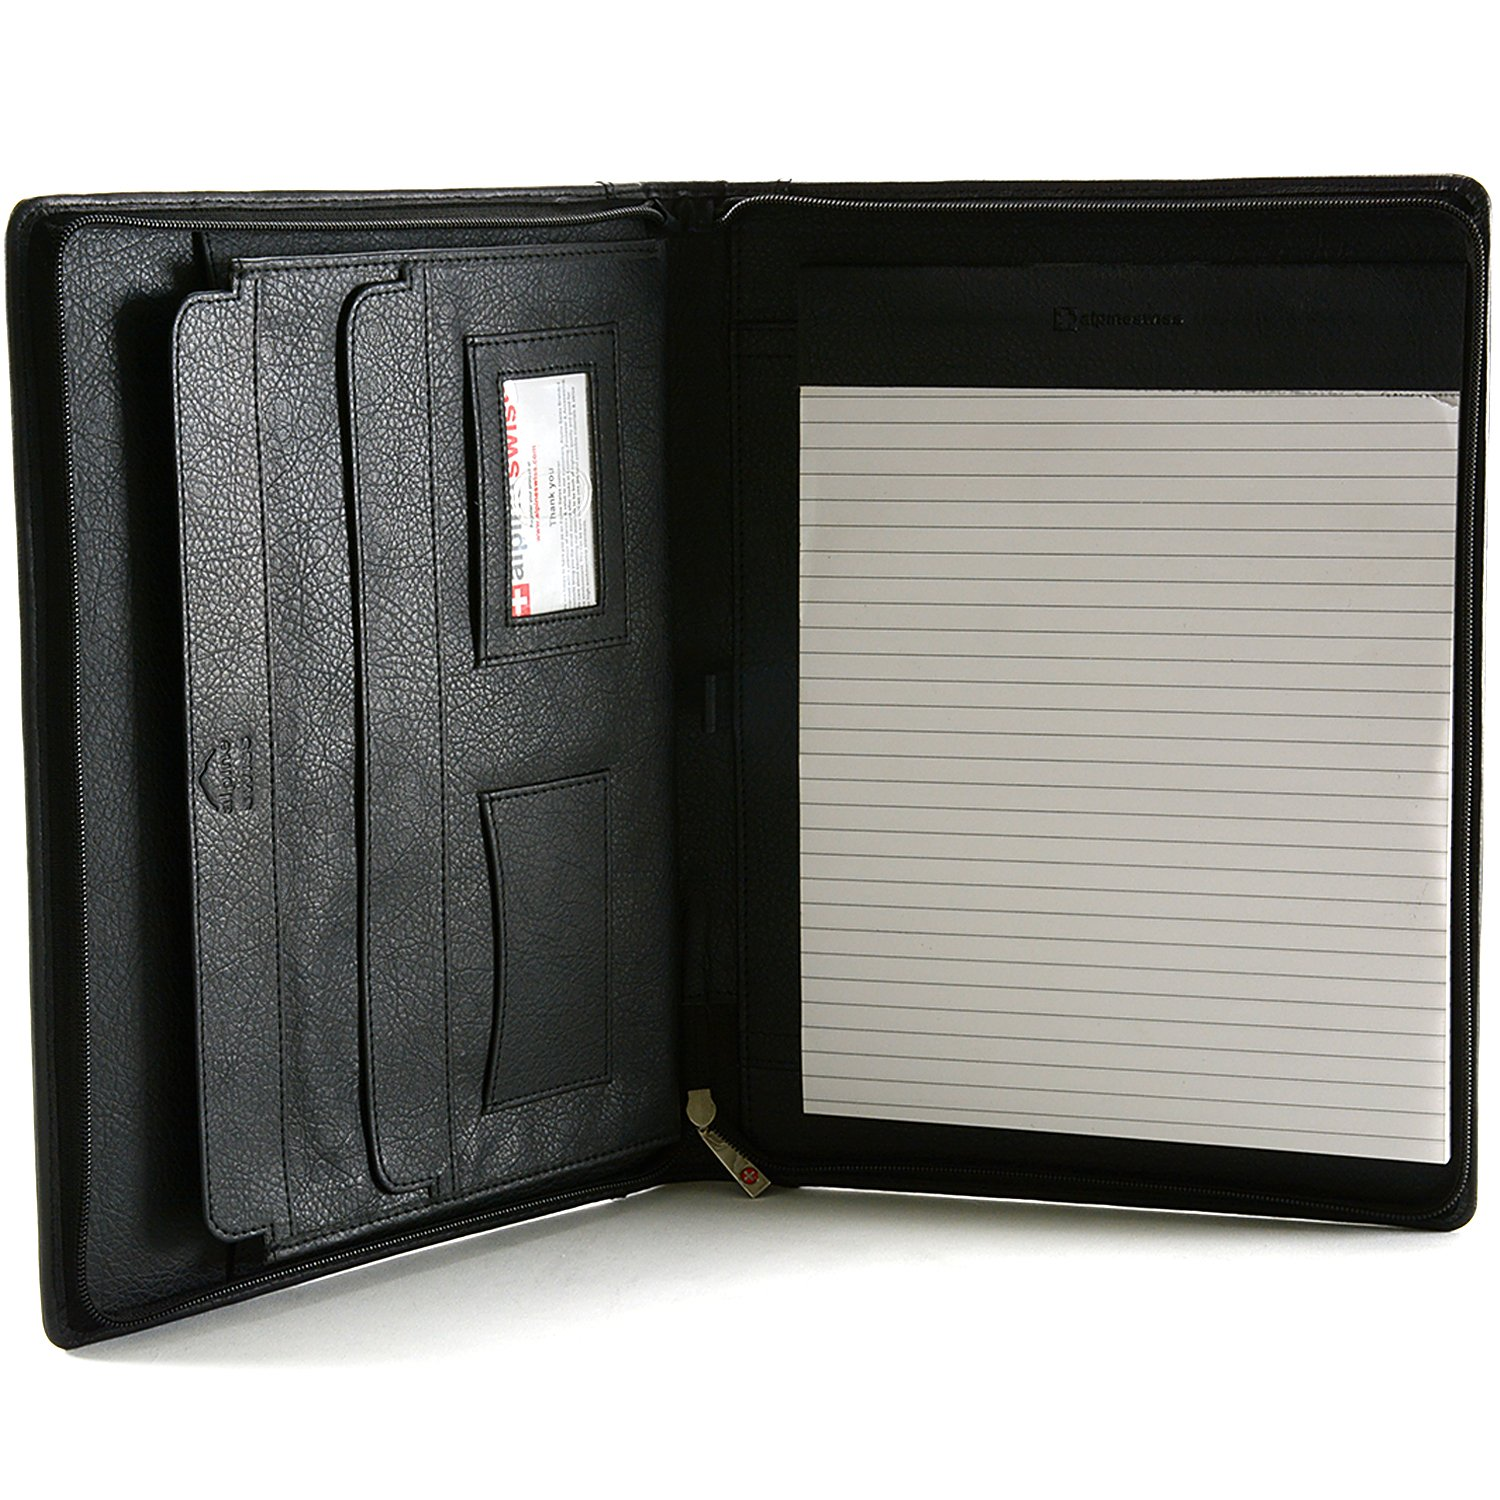 Amazon.com: Alpine Swiss Leather Portfolio, Writing Pad ...